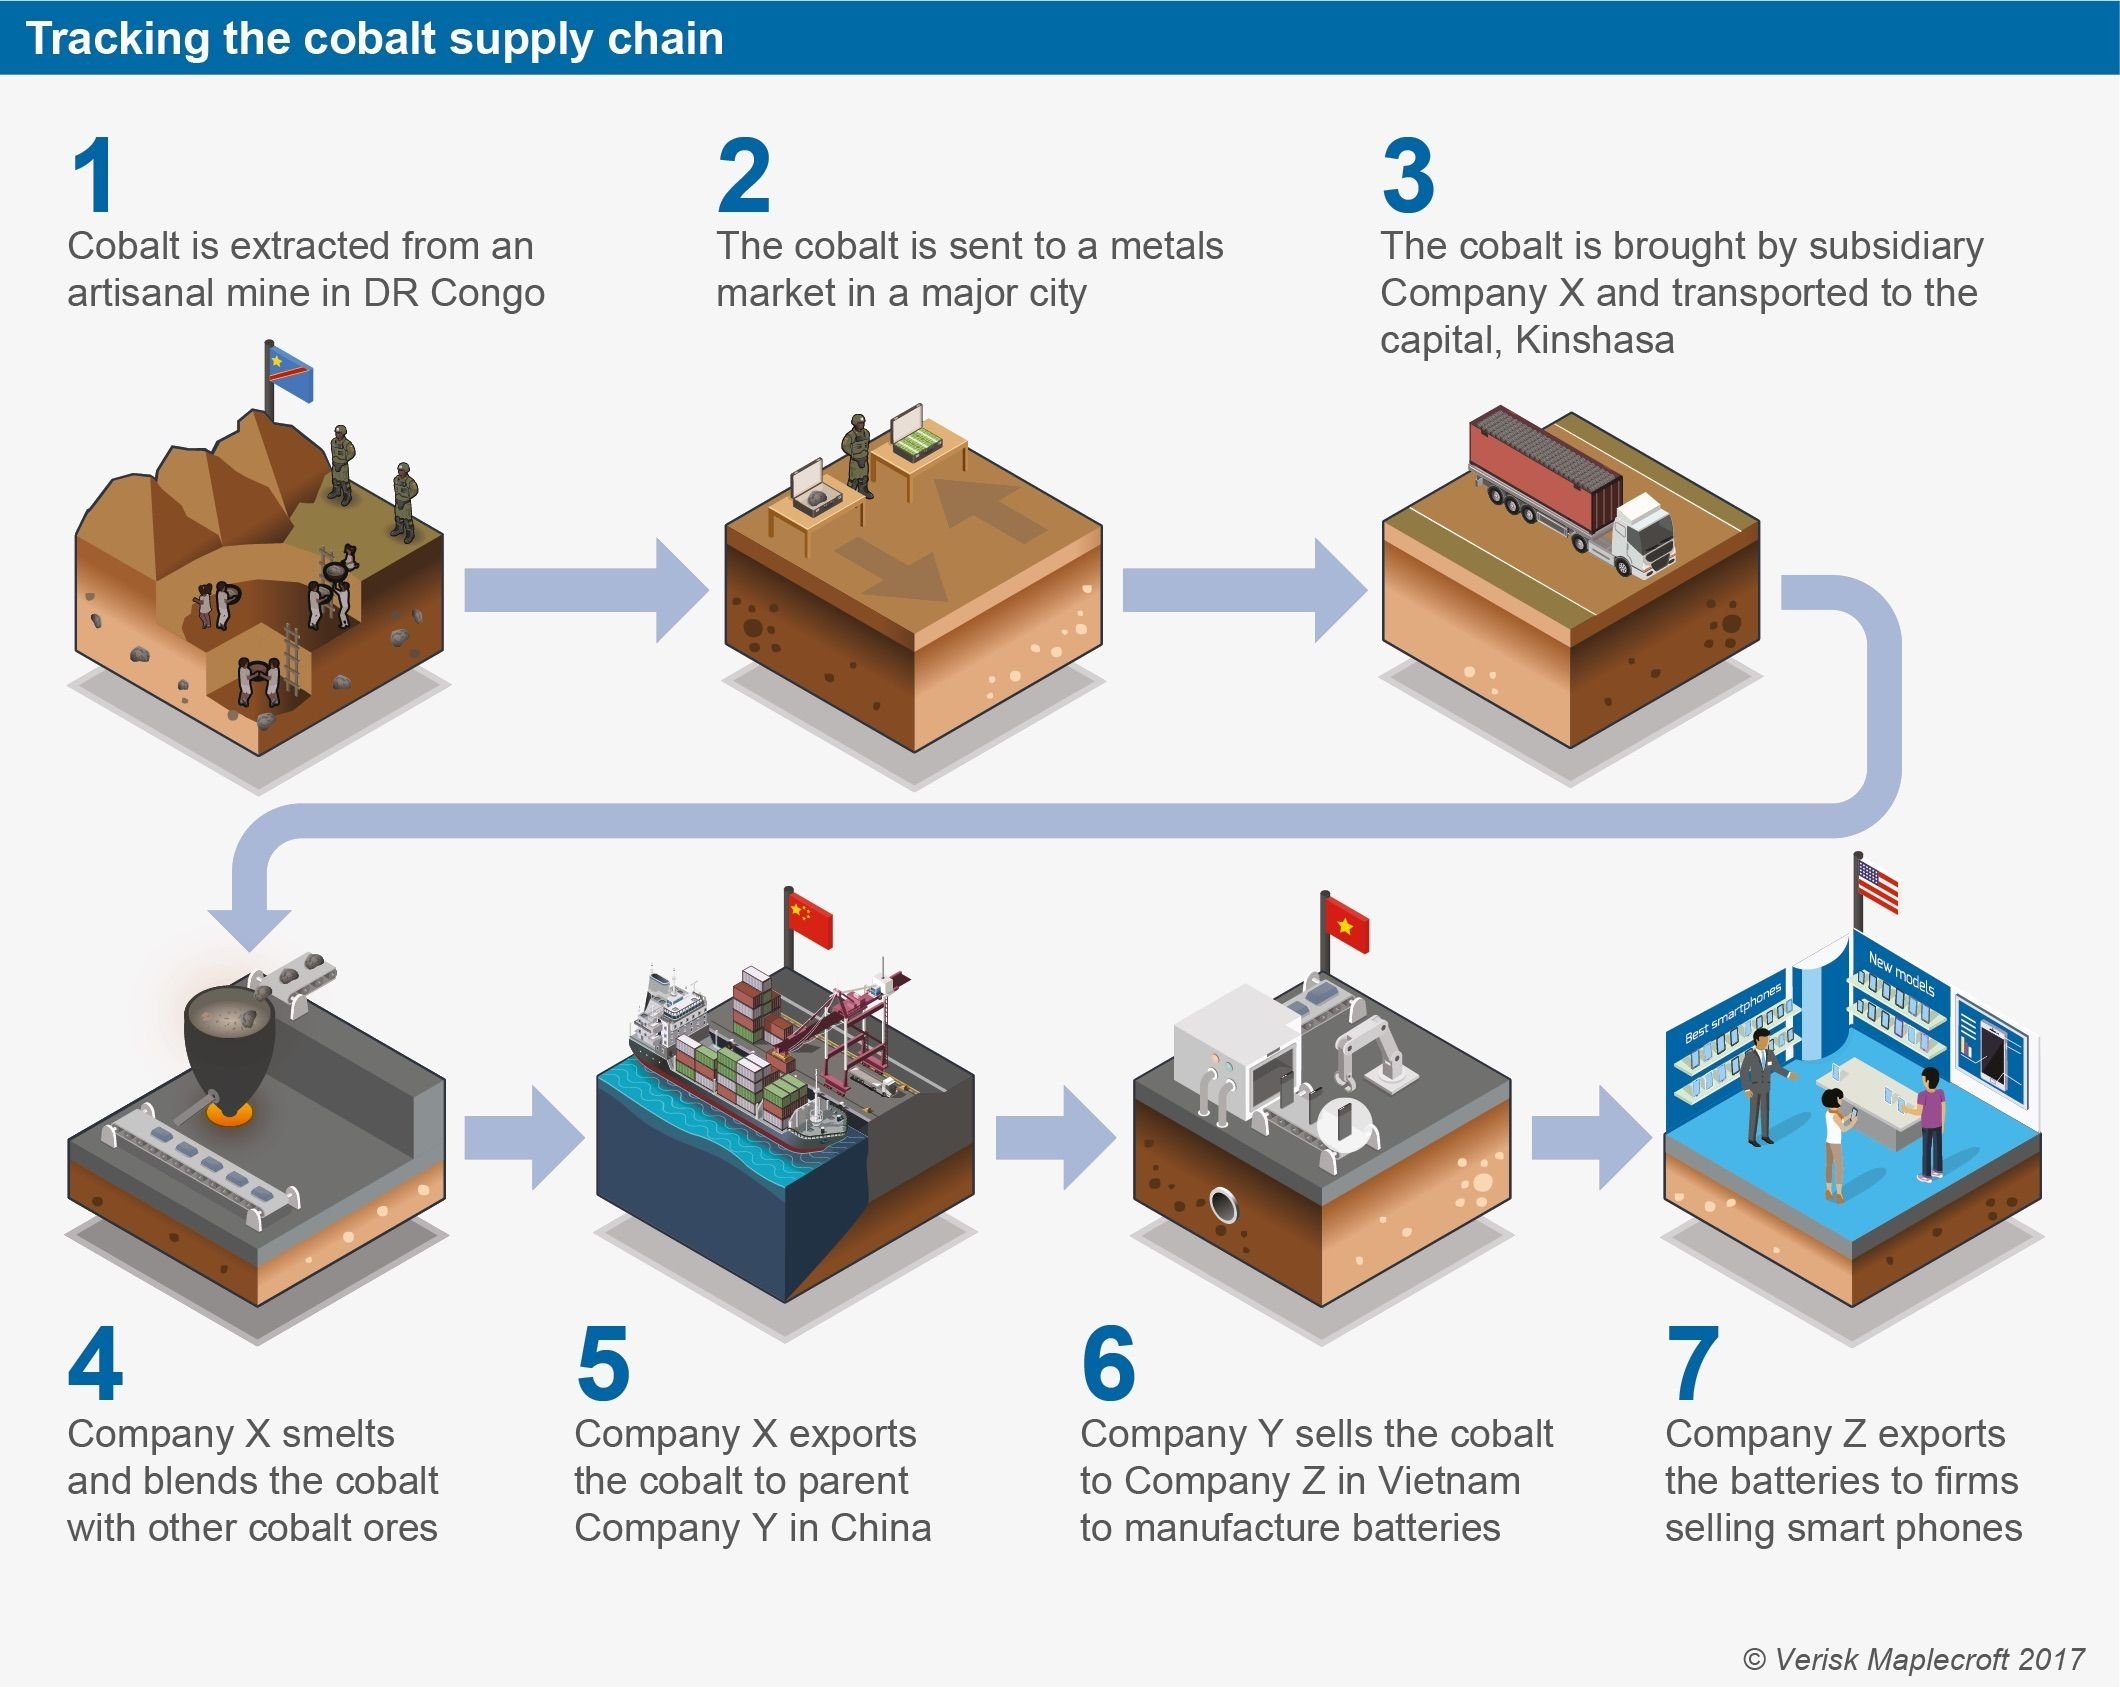 One Of The Key Challenges For Companies Is Traceability Once Mined Mineral Traverses A Complex Supply Chain That Can Include Smelting Together